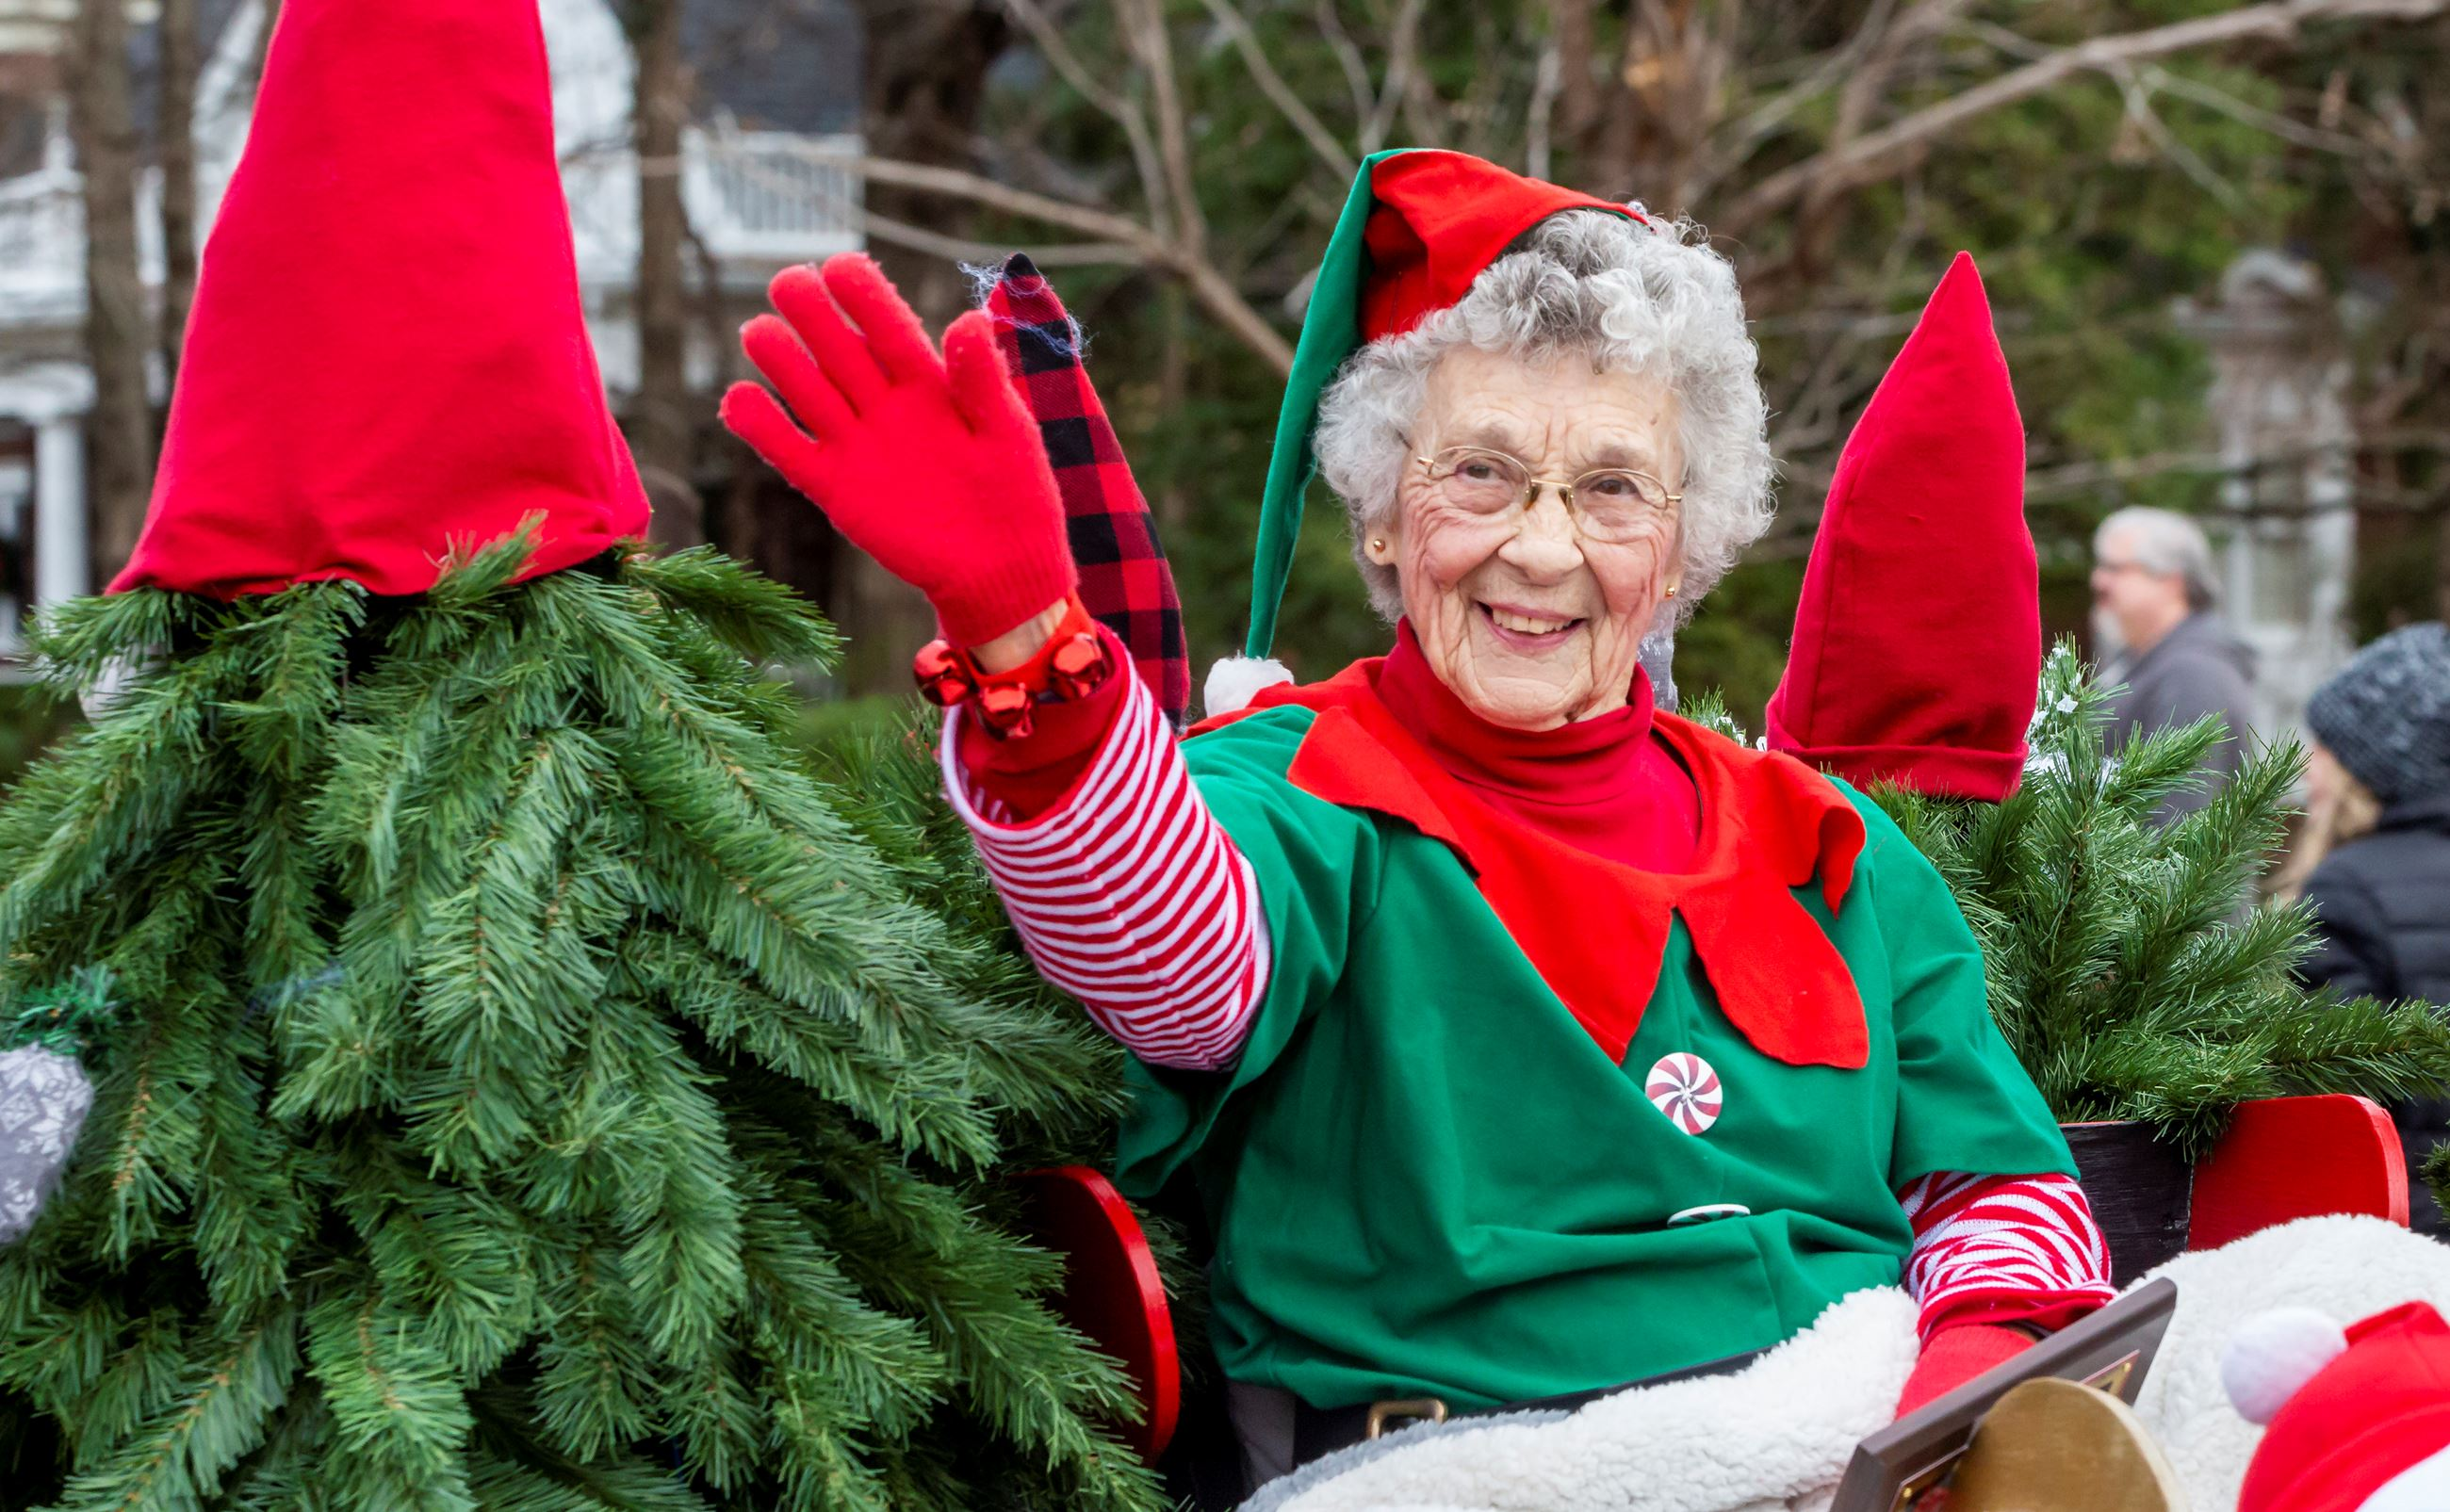 Woman with white hair wearing red and green elf outfit waving